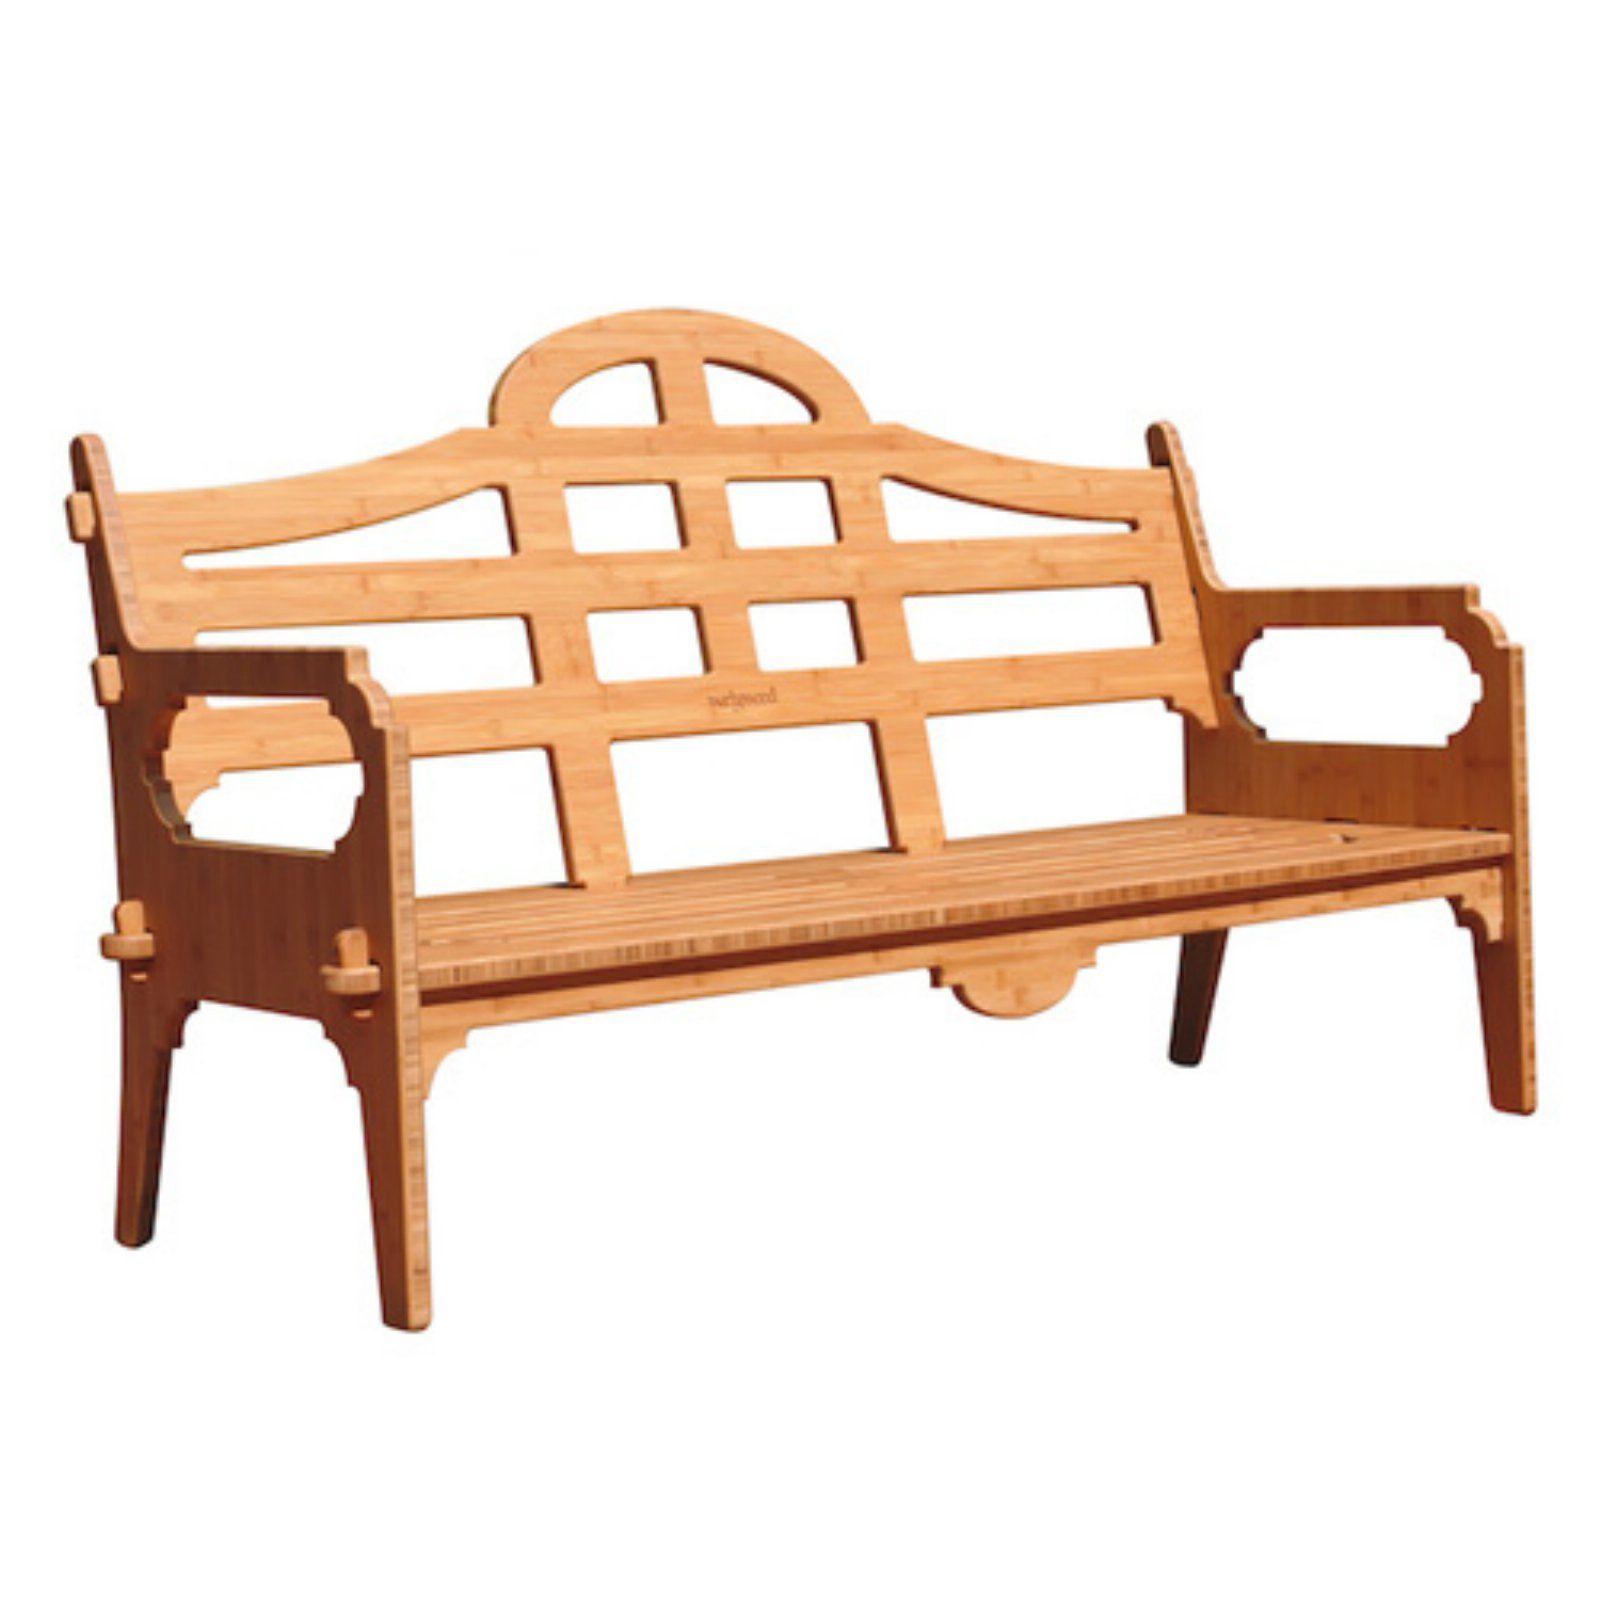 The Bamboo Chairs and Benches for Your